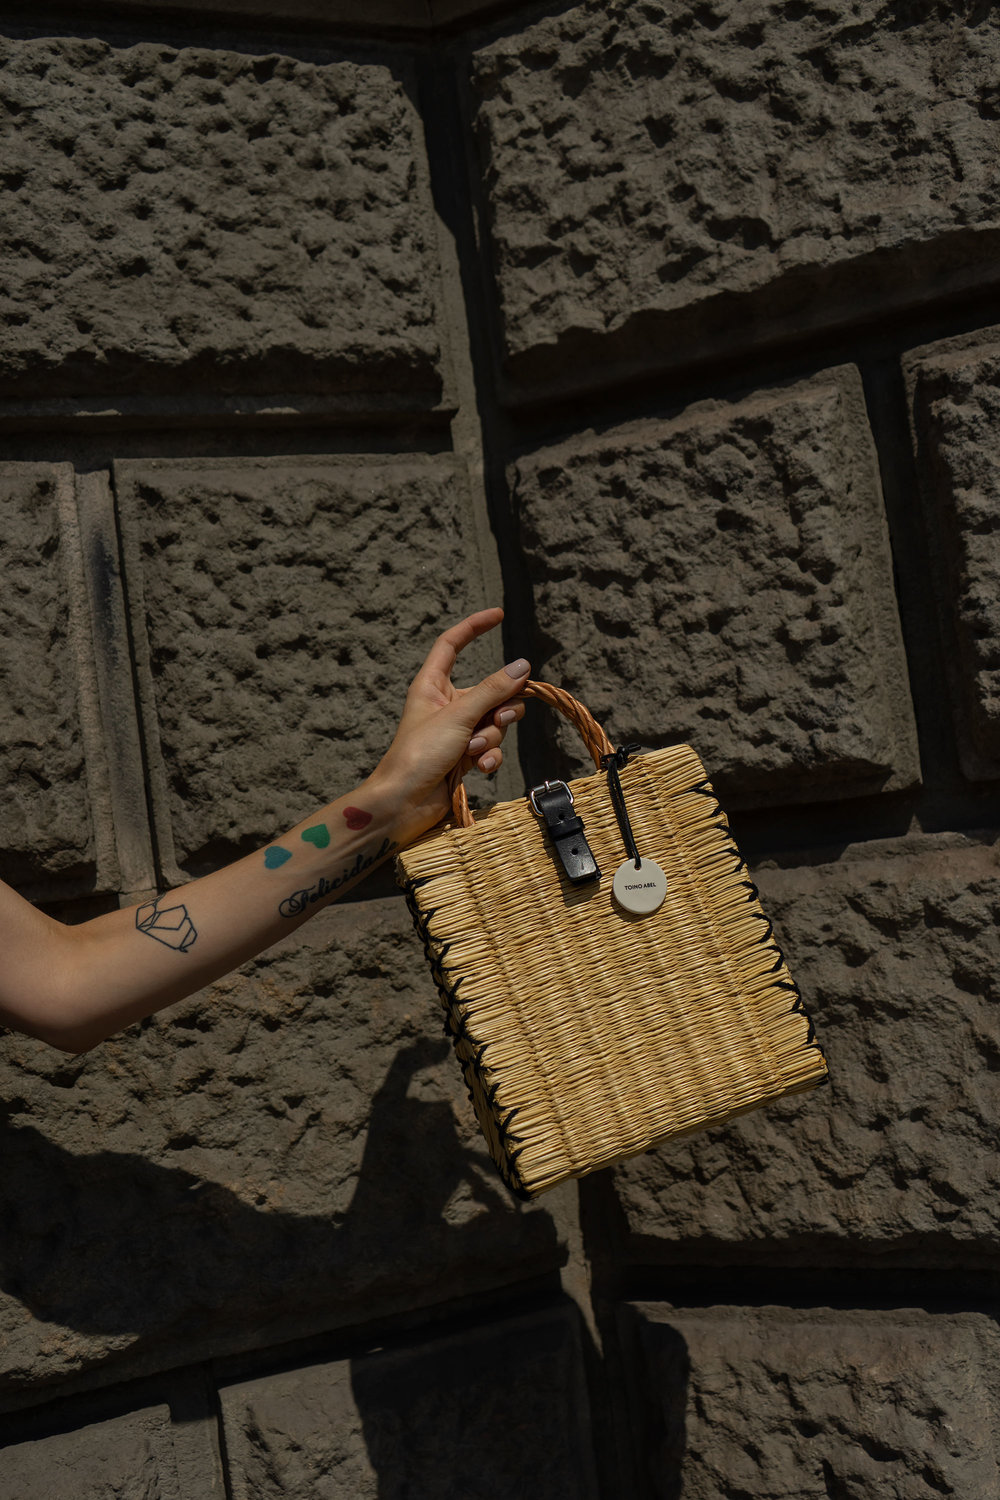 barcelona-blogger-street-style-slip-dress-strappy-sandals-handmade-Portuguese-reed-baskets-fashion-blog-01.jpg